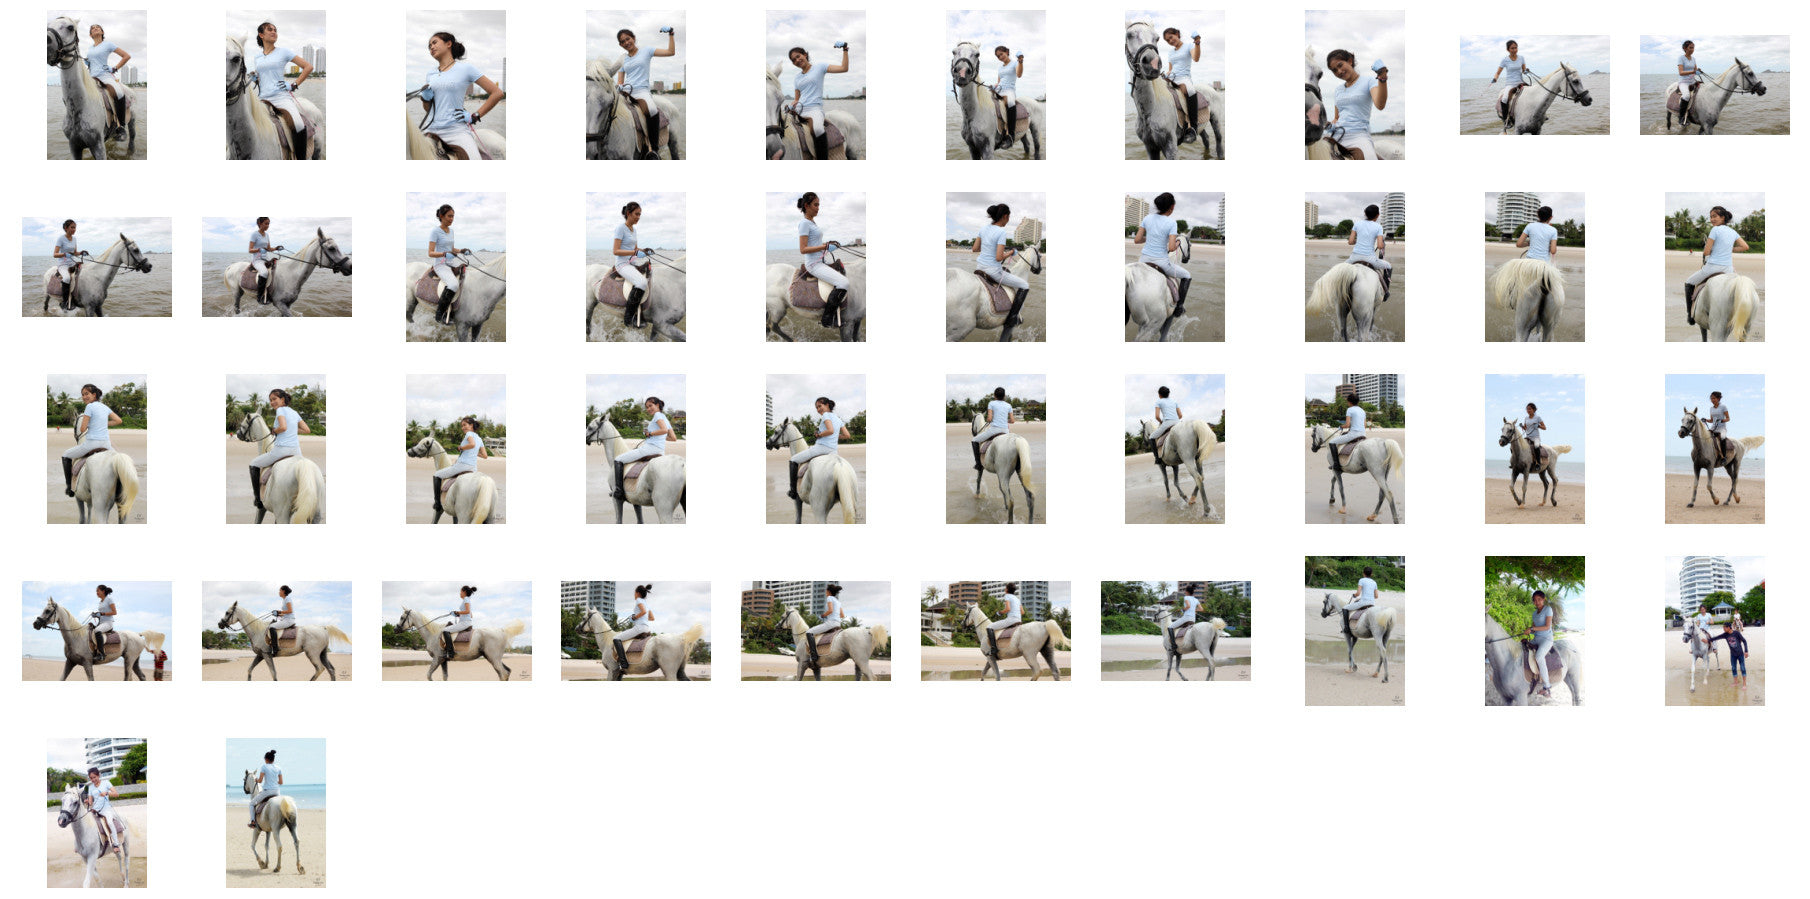 Som in Jodhpurs Riding with Saddle on White Arabian Horse, Part 5 - Riding.Vision